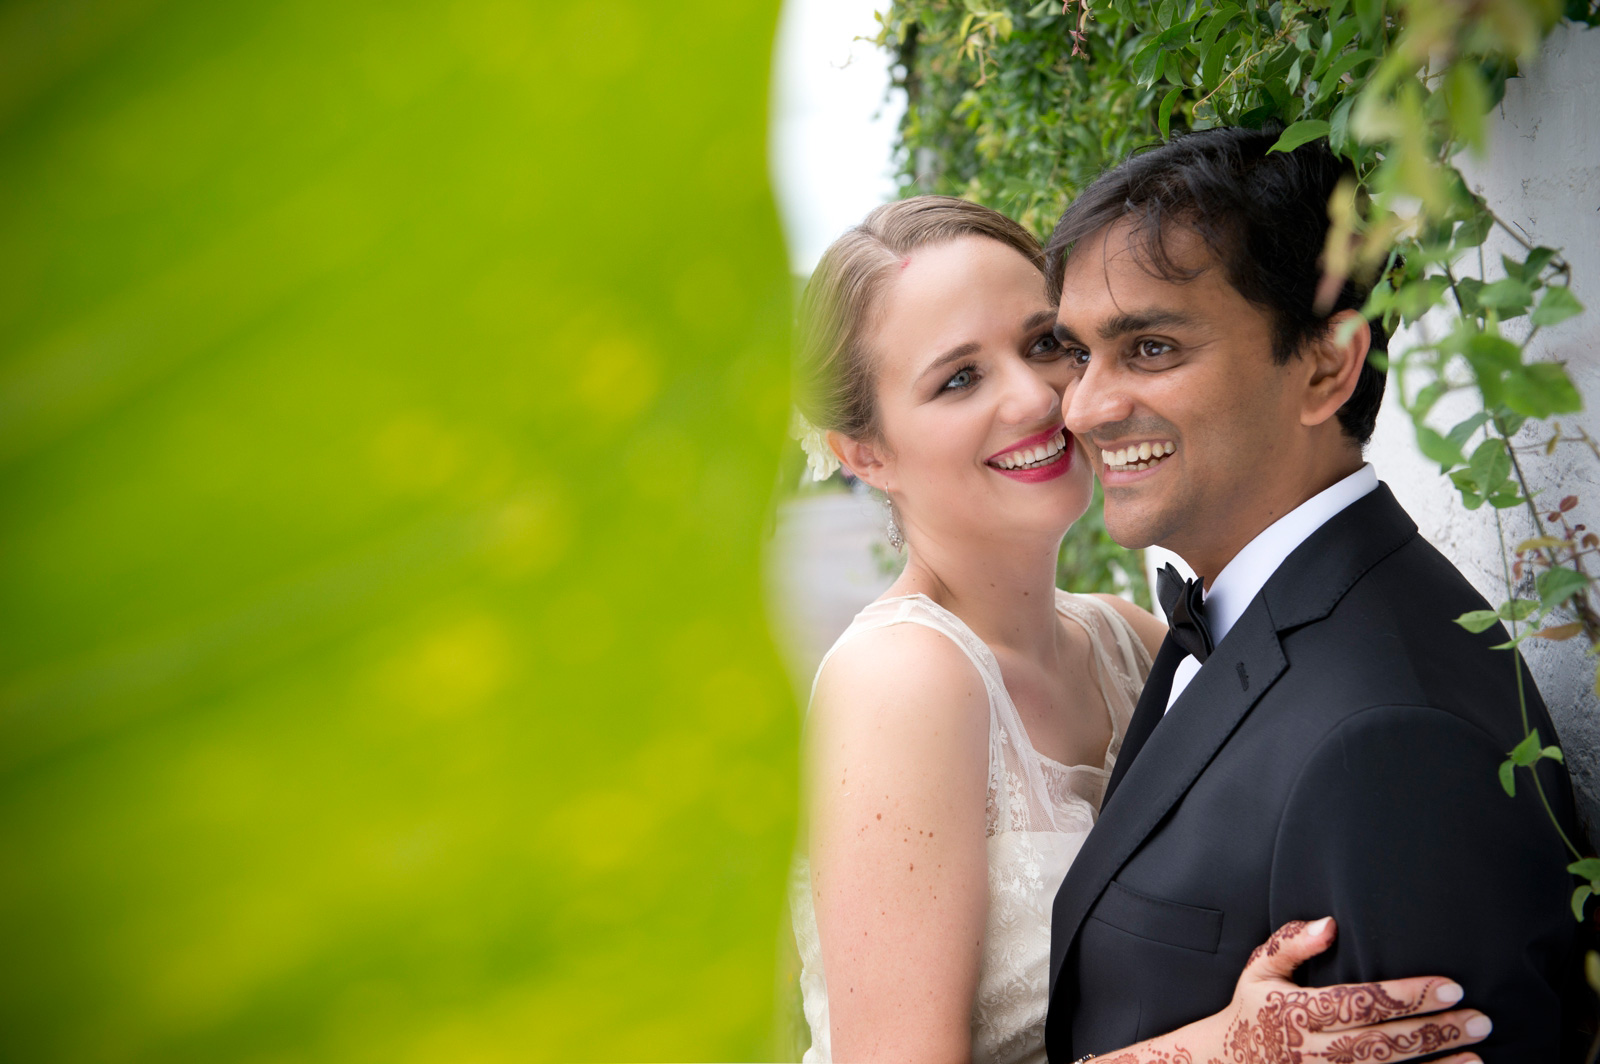 Hindu Christian Wedding Documentary Wedding Photographer Couple Creative Shoot